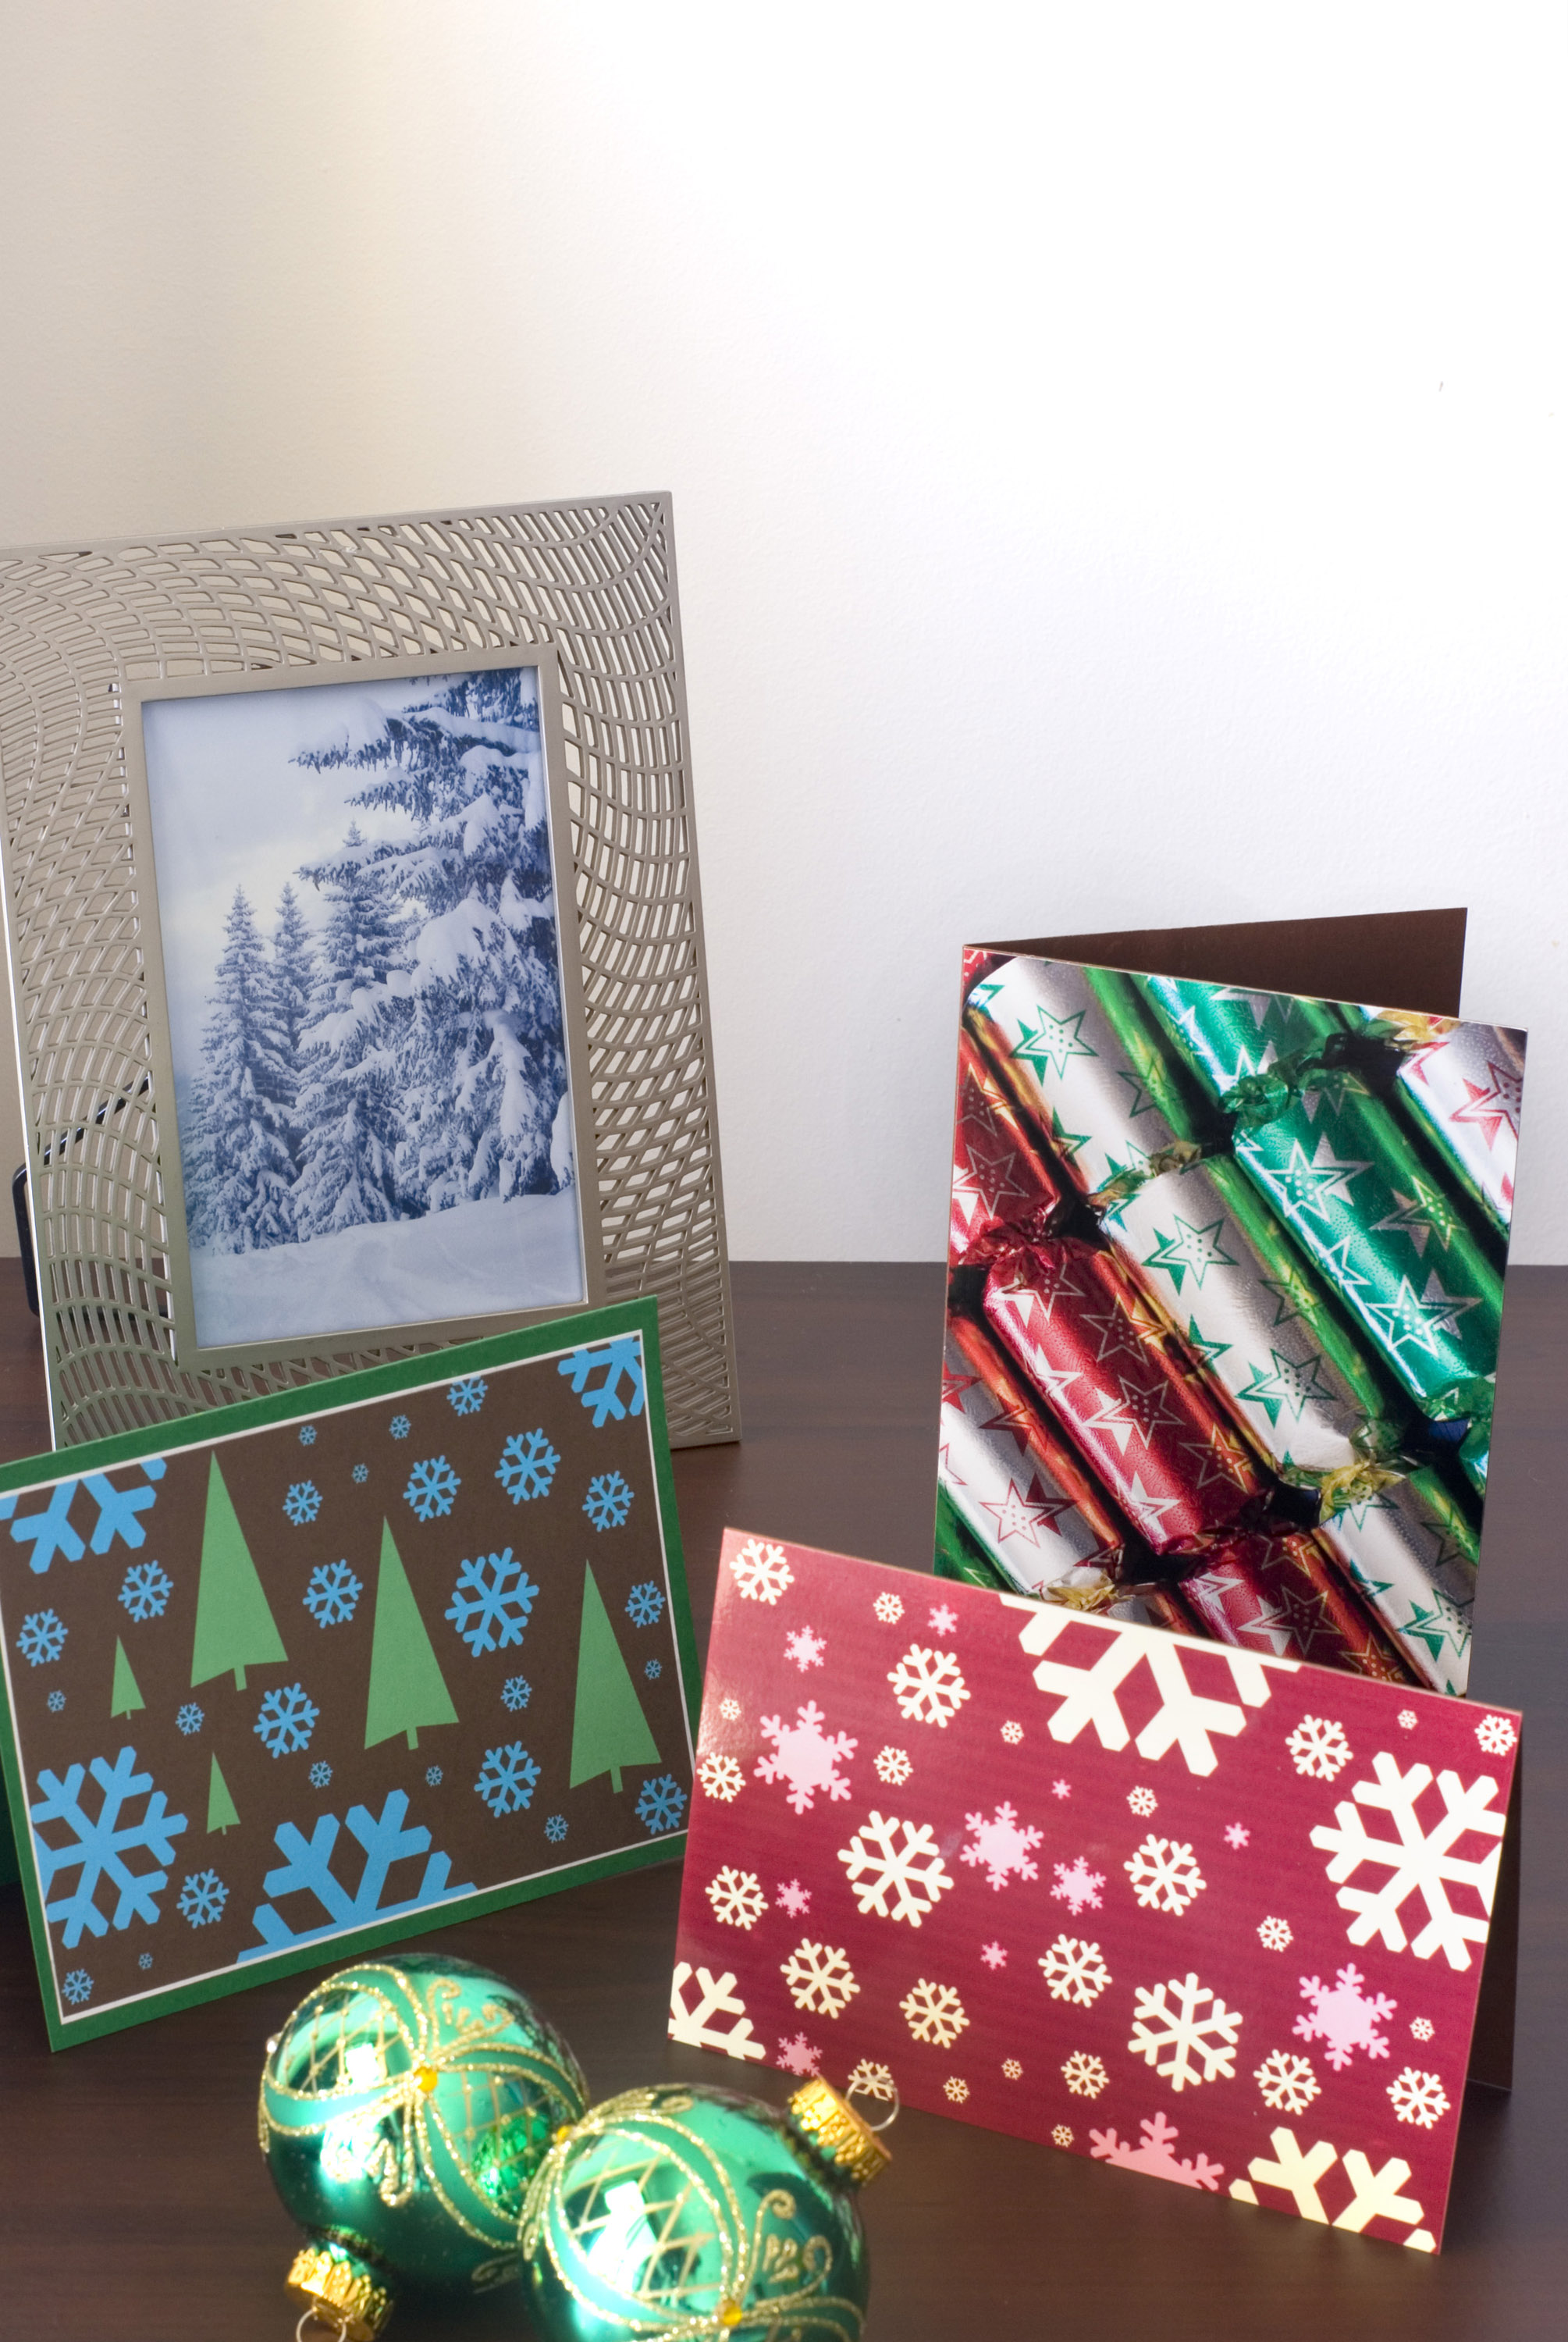 a festive still life image of a winter photo in a frame, christmas cards and ornaments